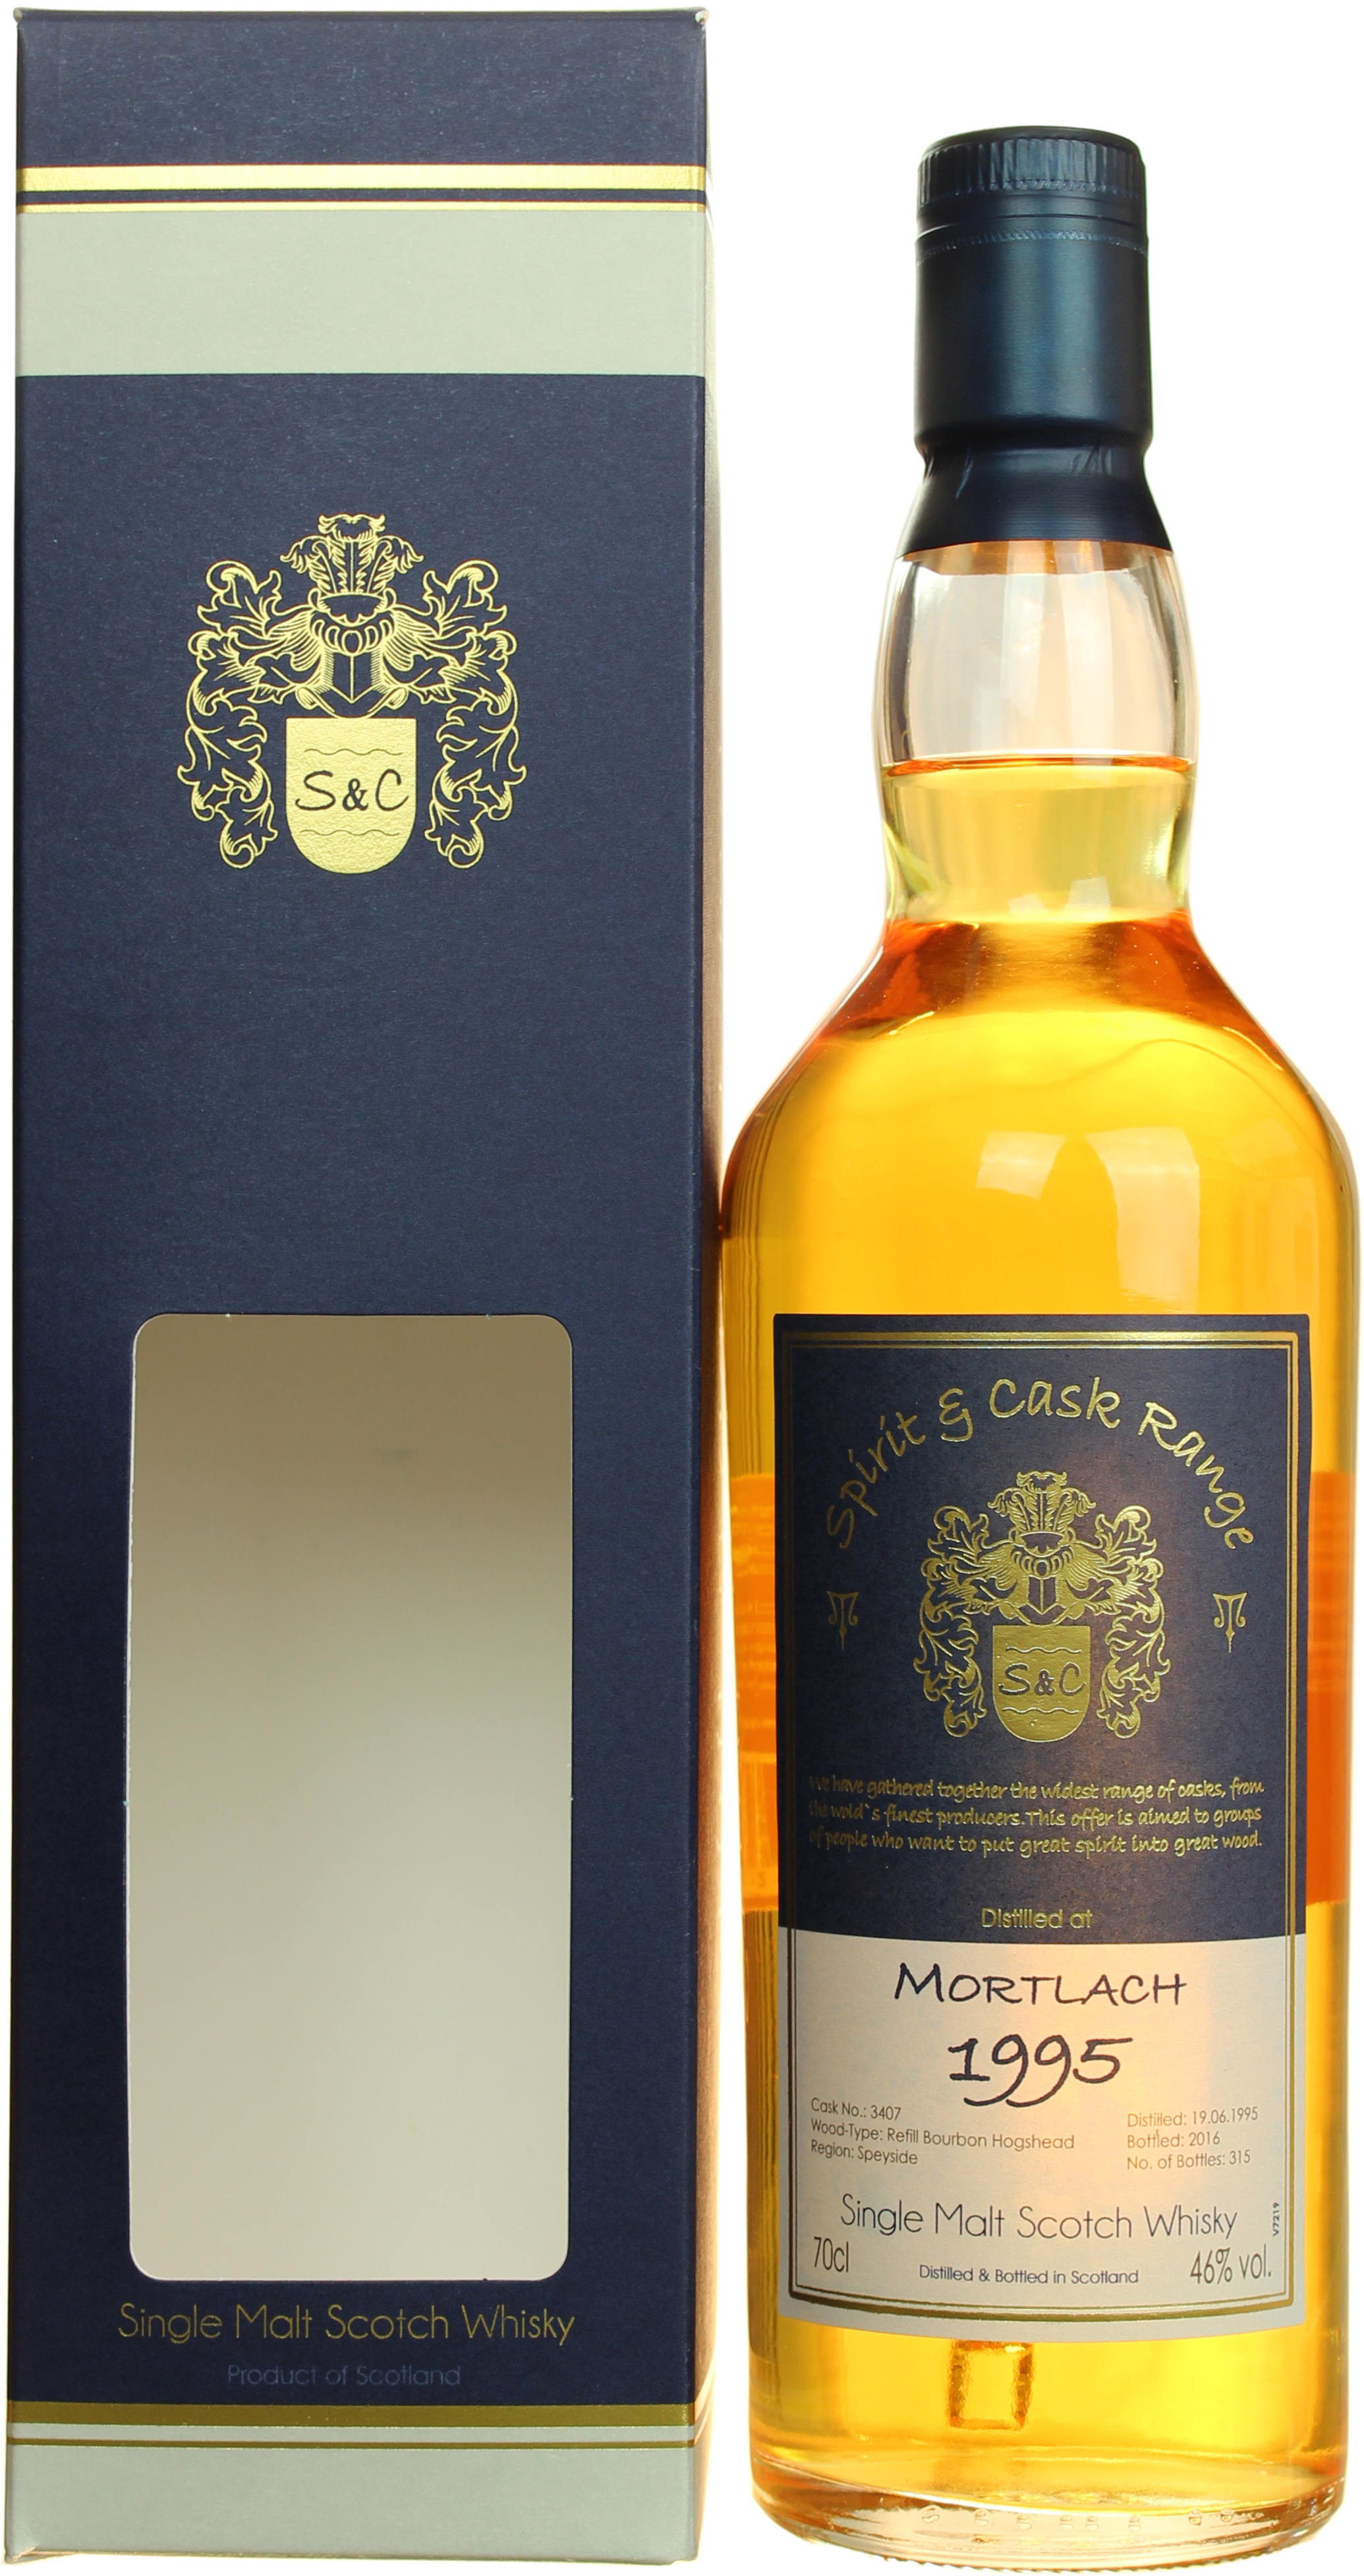 adventskalender mortlach 1995 2016 refill hogshead spirit cask range 46. Black Bedroom Furniture Sets. Home Design Ideas